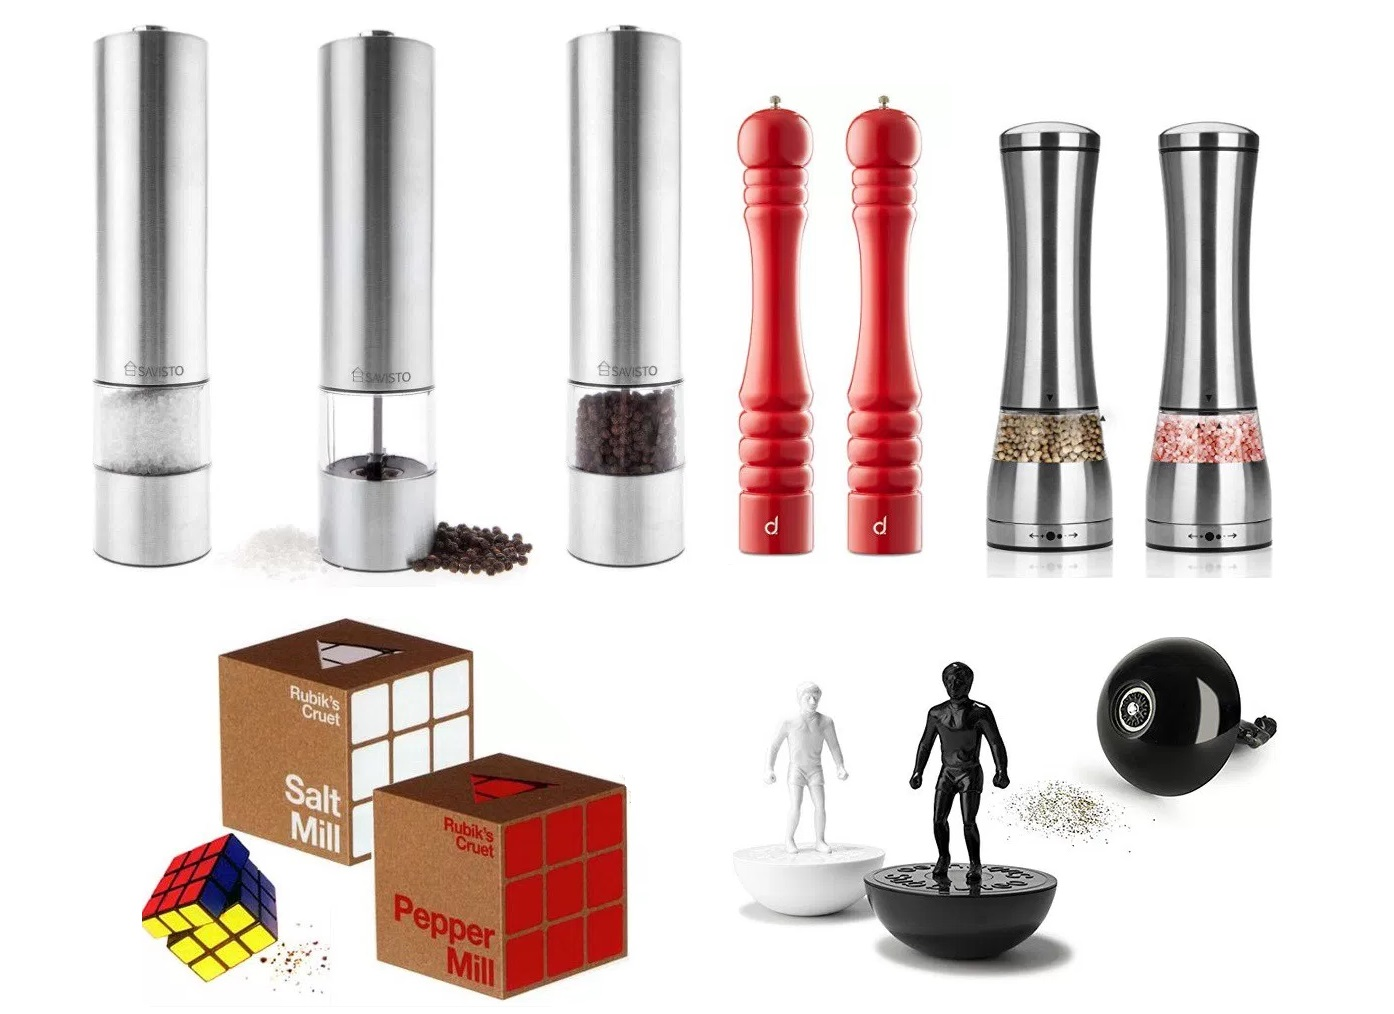 Top 10 amazing novelty and unusual salt pepper mill grinders - Novelty pepper grinder ...